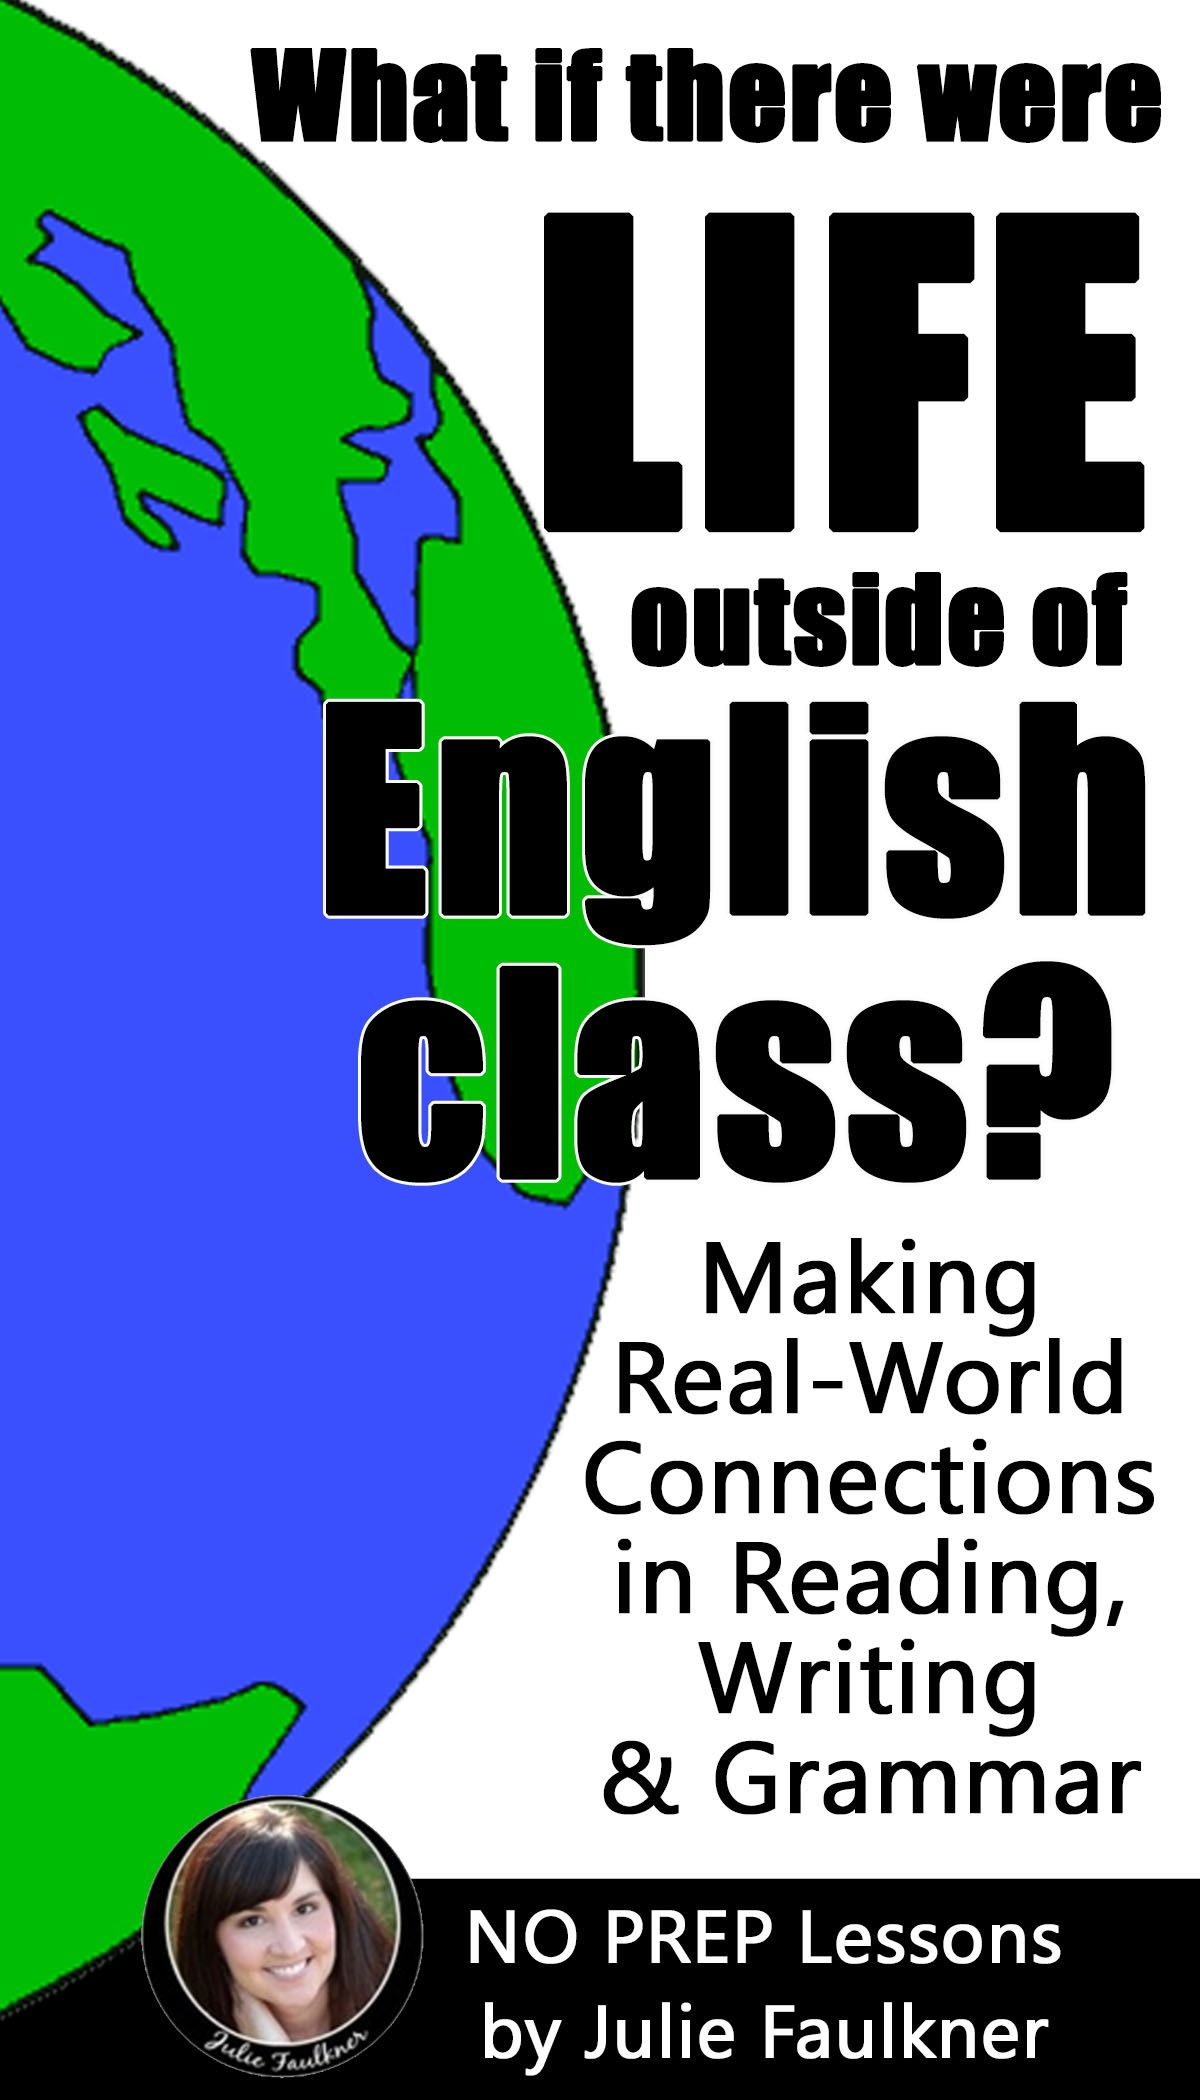 Are there Any English Teachers out there?